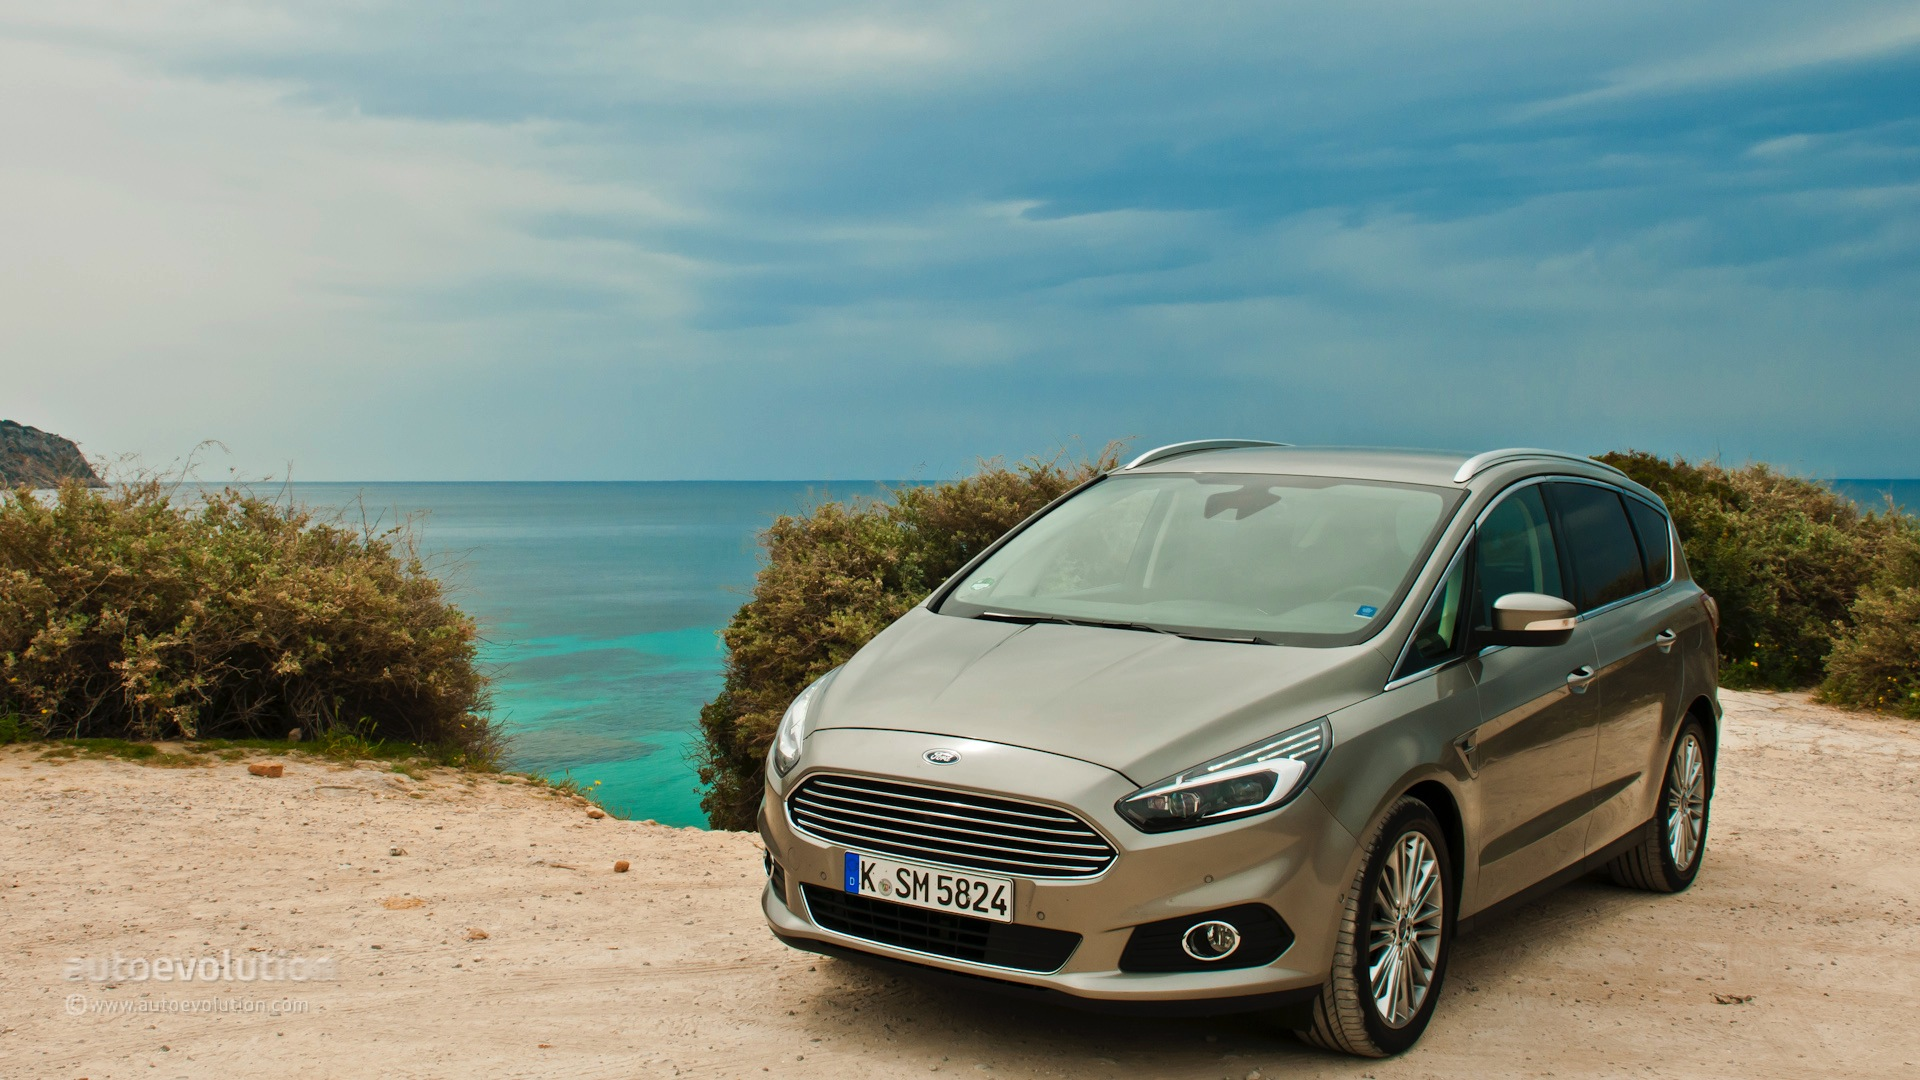 Car Throttle Wallpaper 2015 Ford S Max Hd Wallpapers Colourful Personality